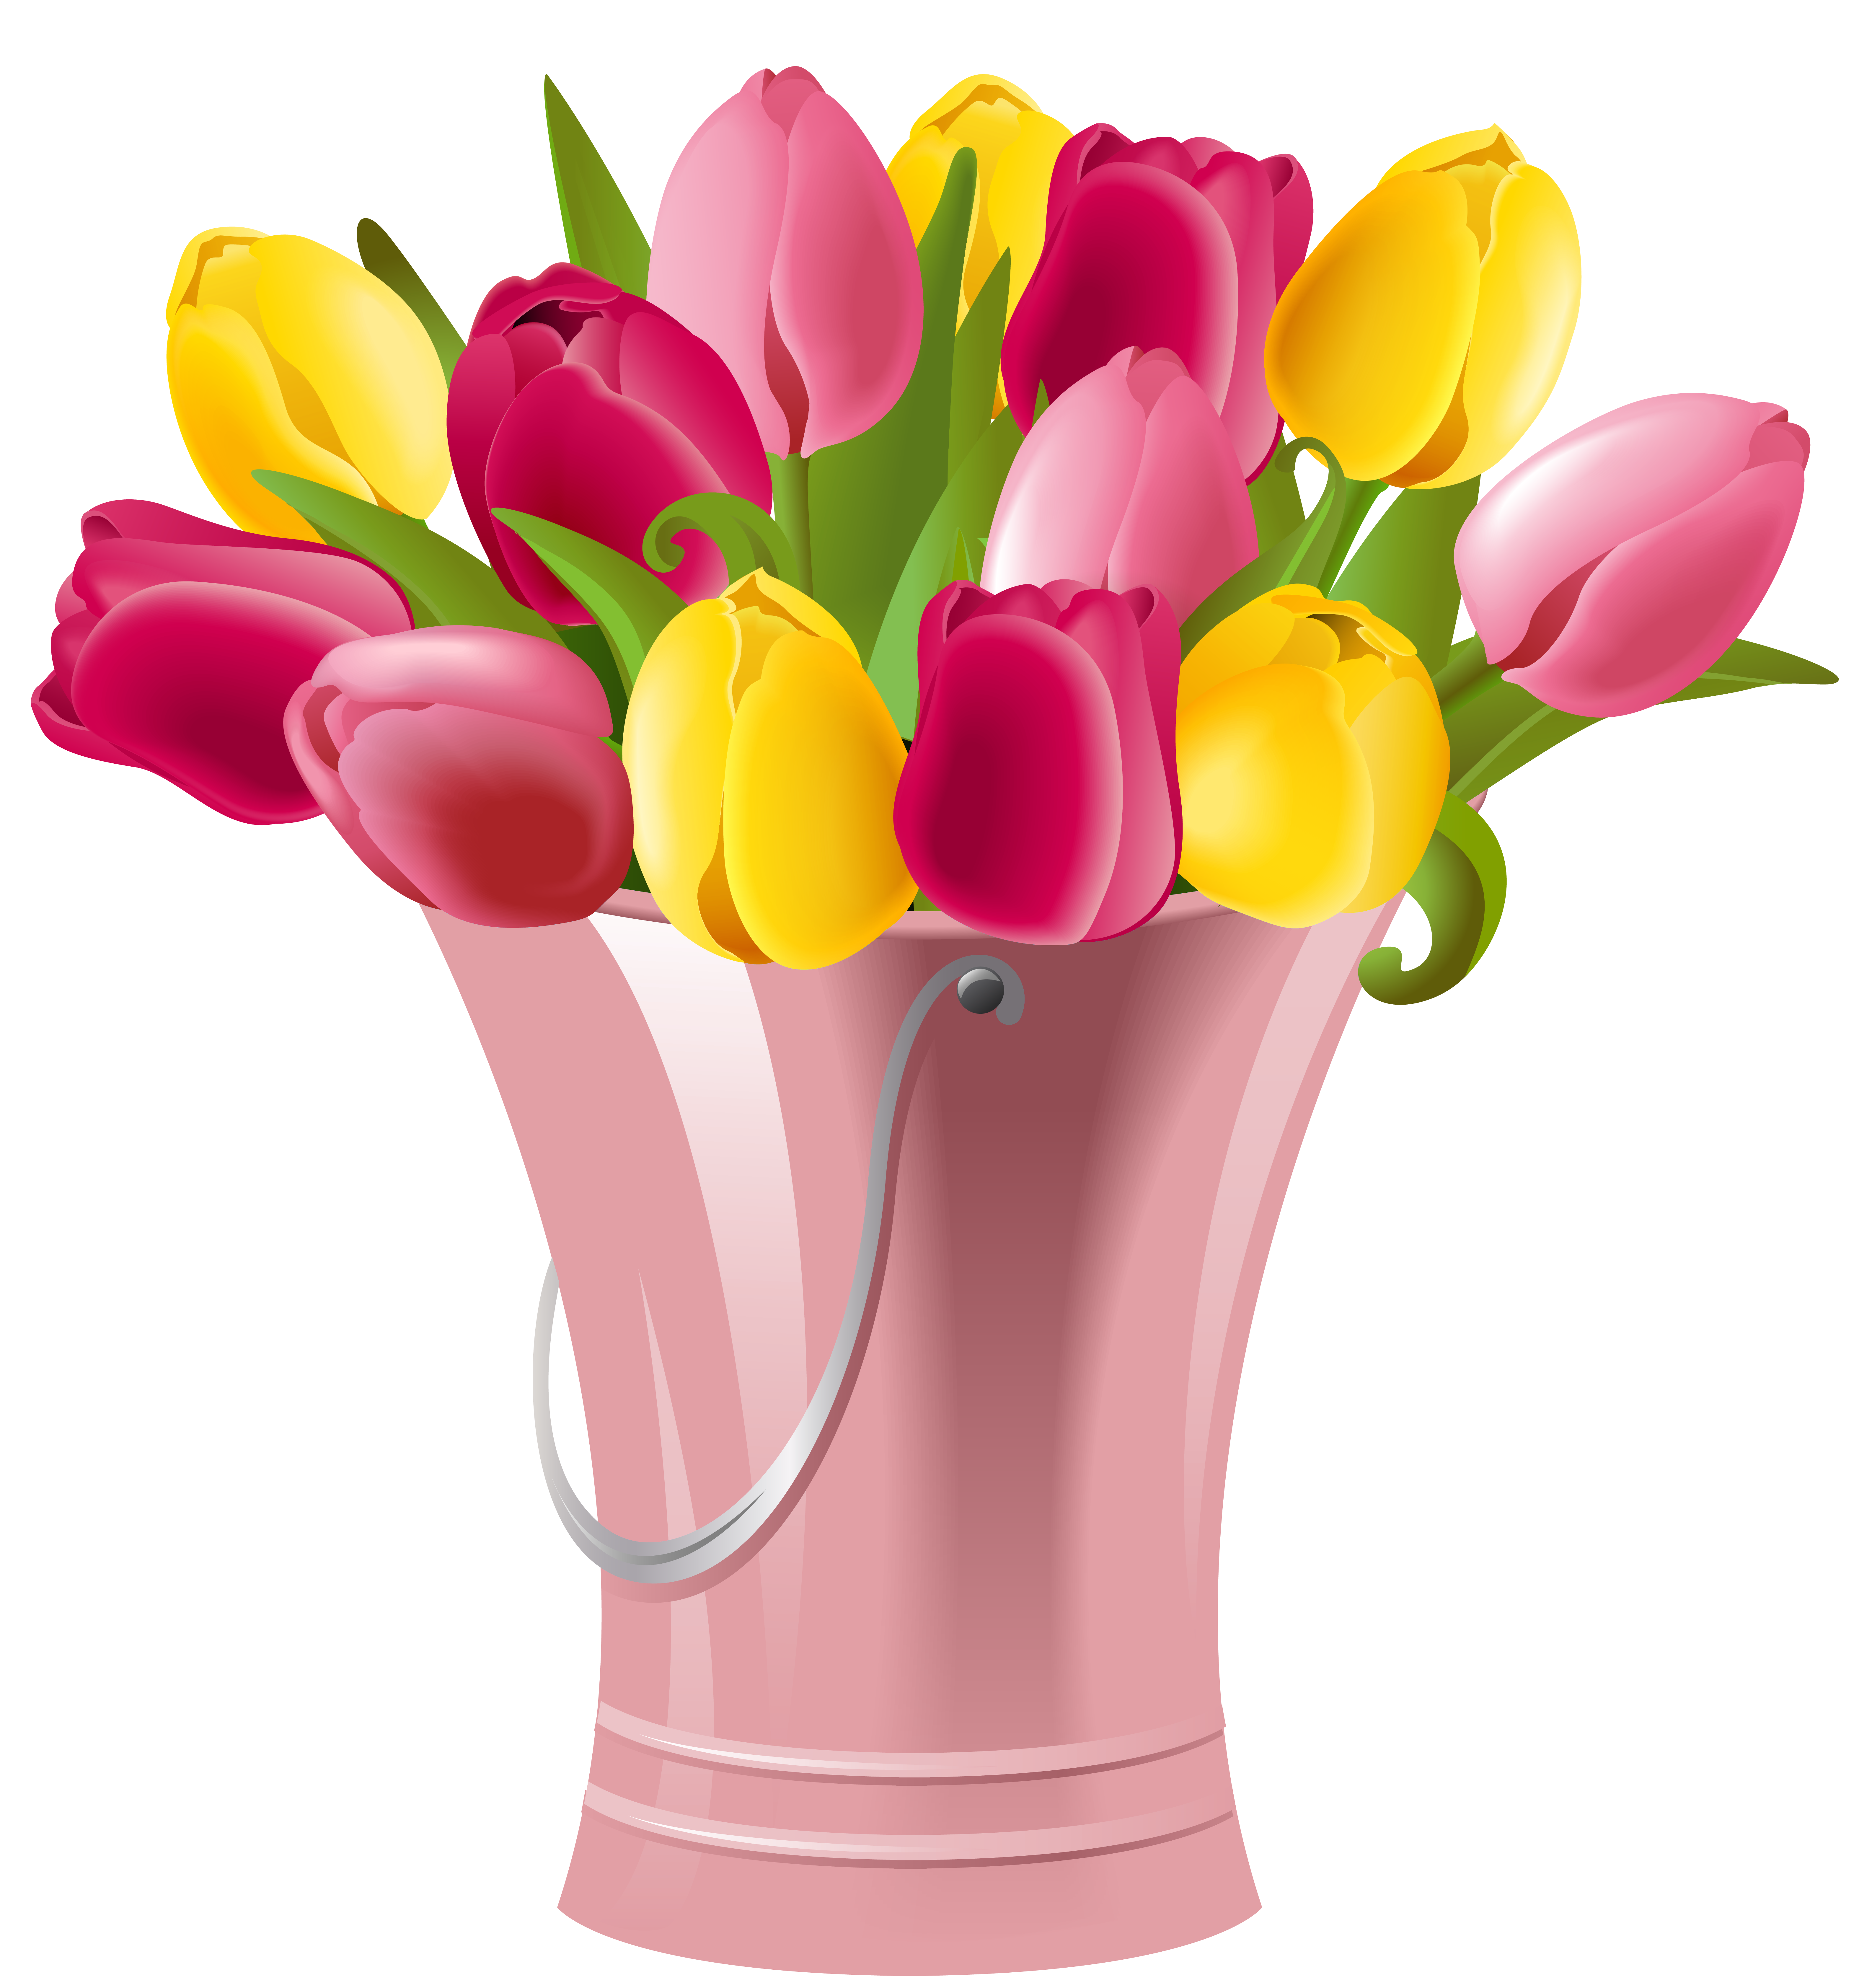 Clipart roses bucket. Spring with tulips transparent